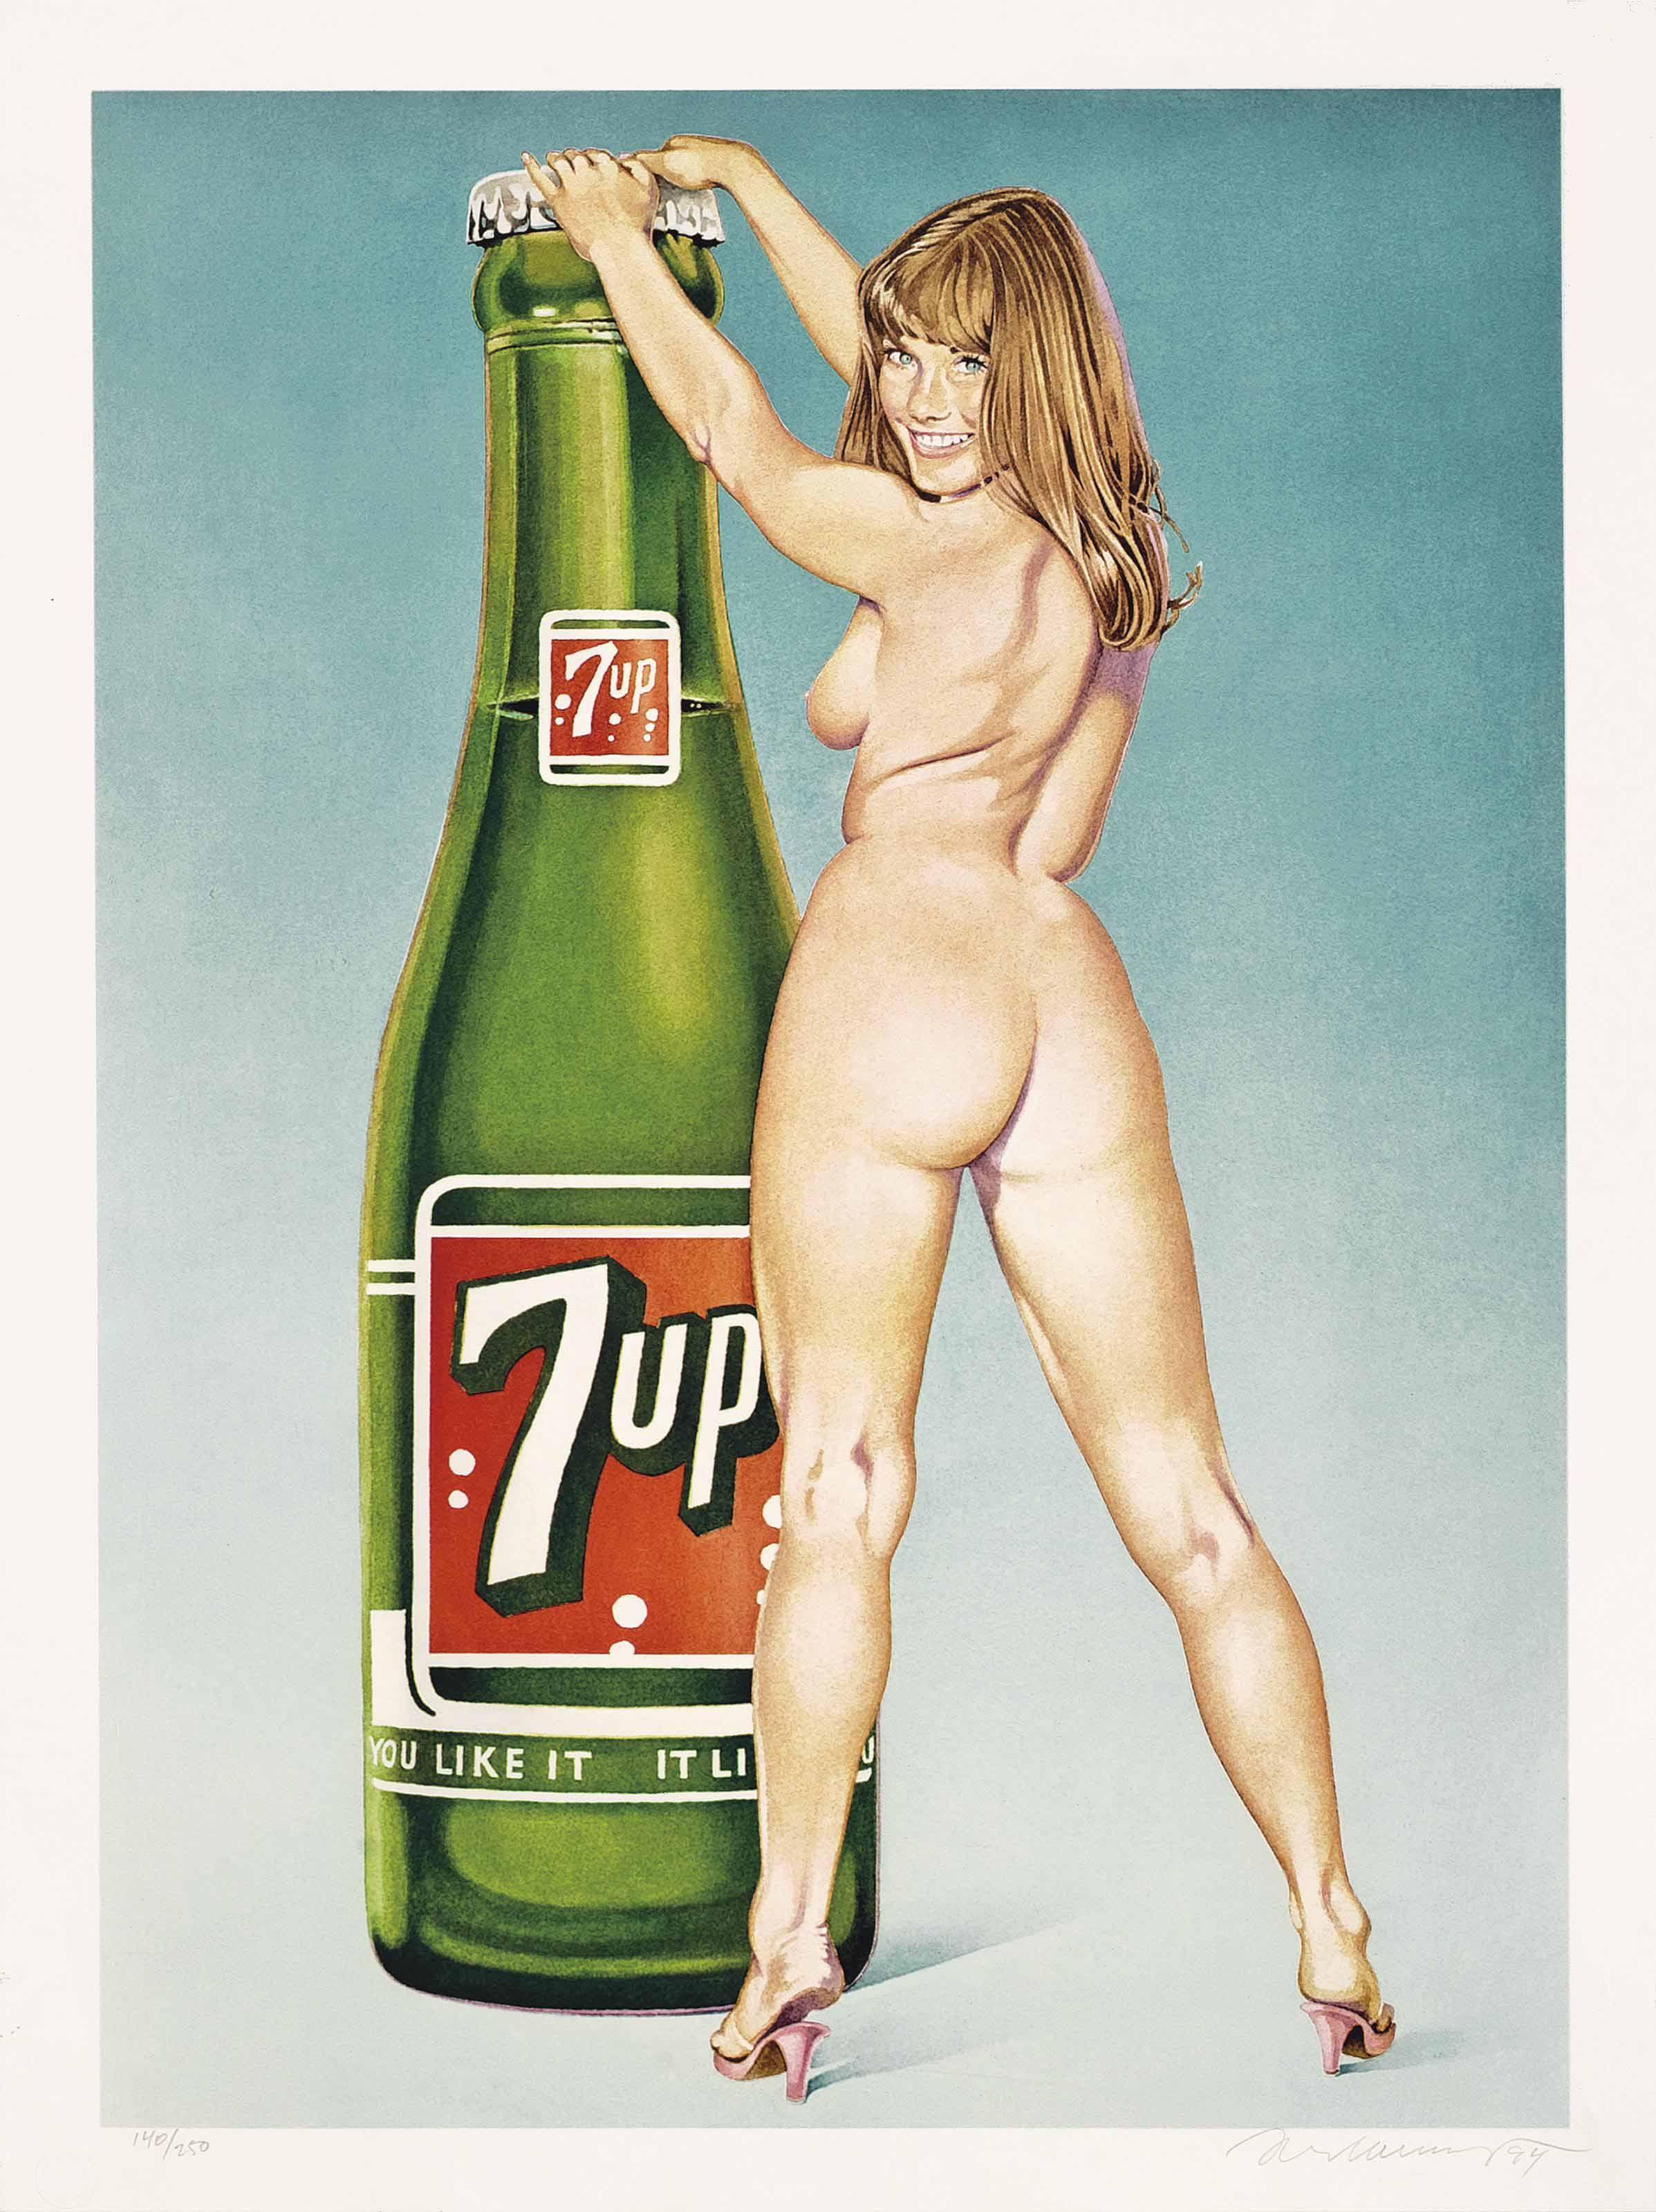 """""""You Like it - it Likes you (7Up),"""" 1994."""